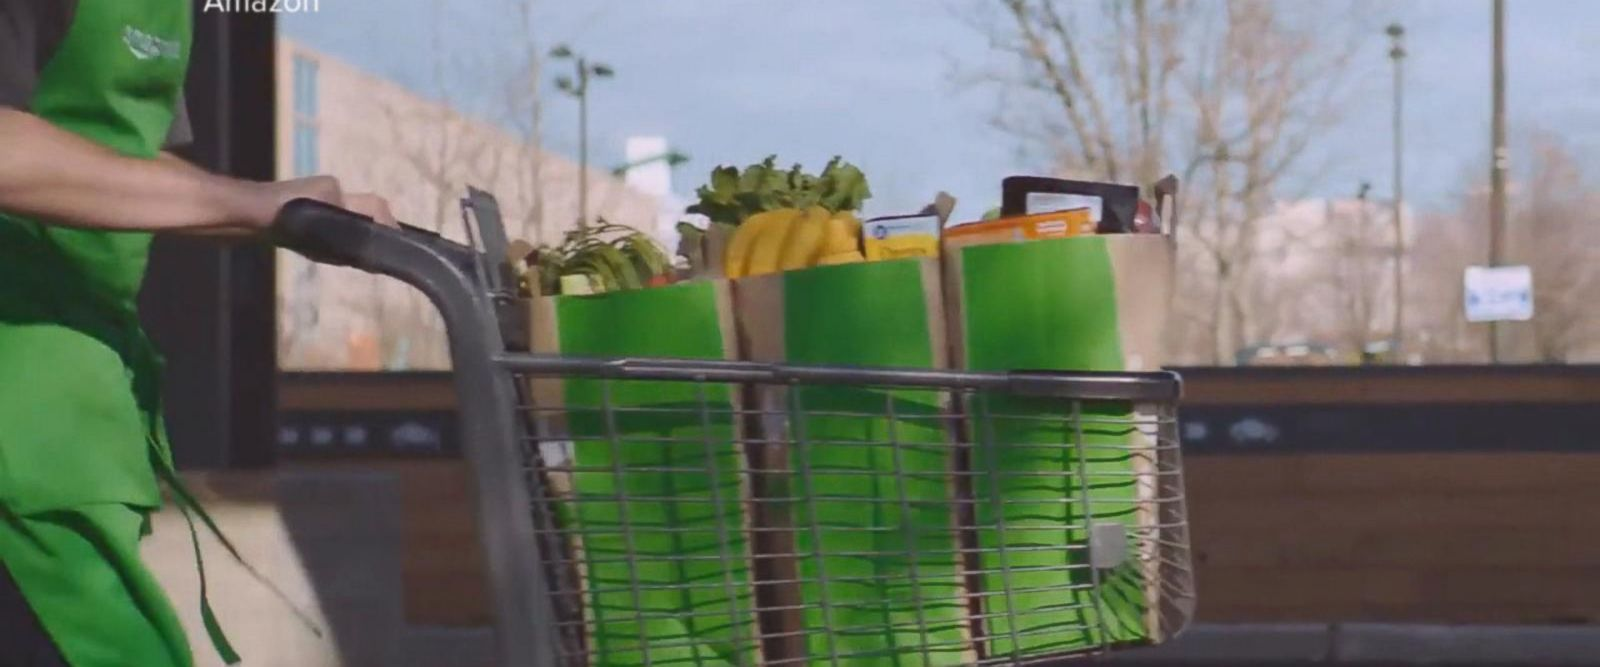 VIDEO: Drive-Through groceries from Amazon